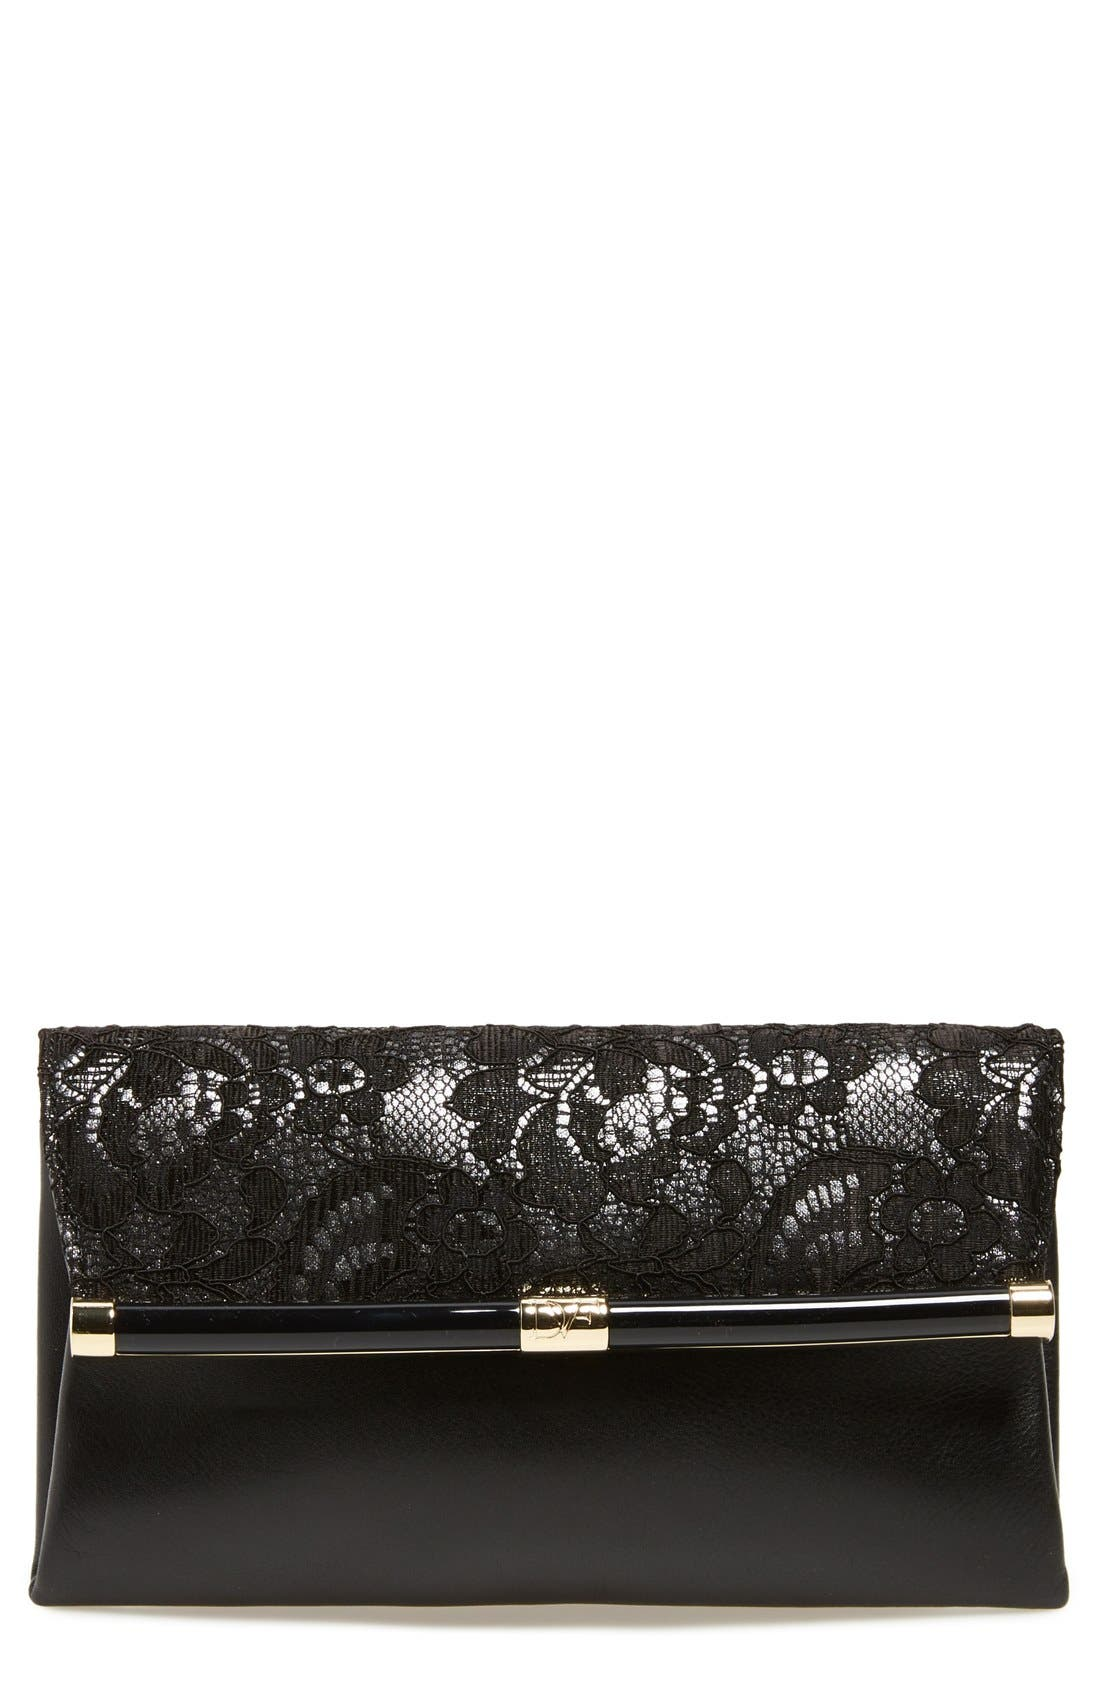 Alternate Image 1 Selected - Diane von Furstenberg '440' Floral Lace Flap Envelope Clutch